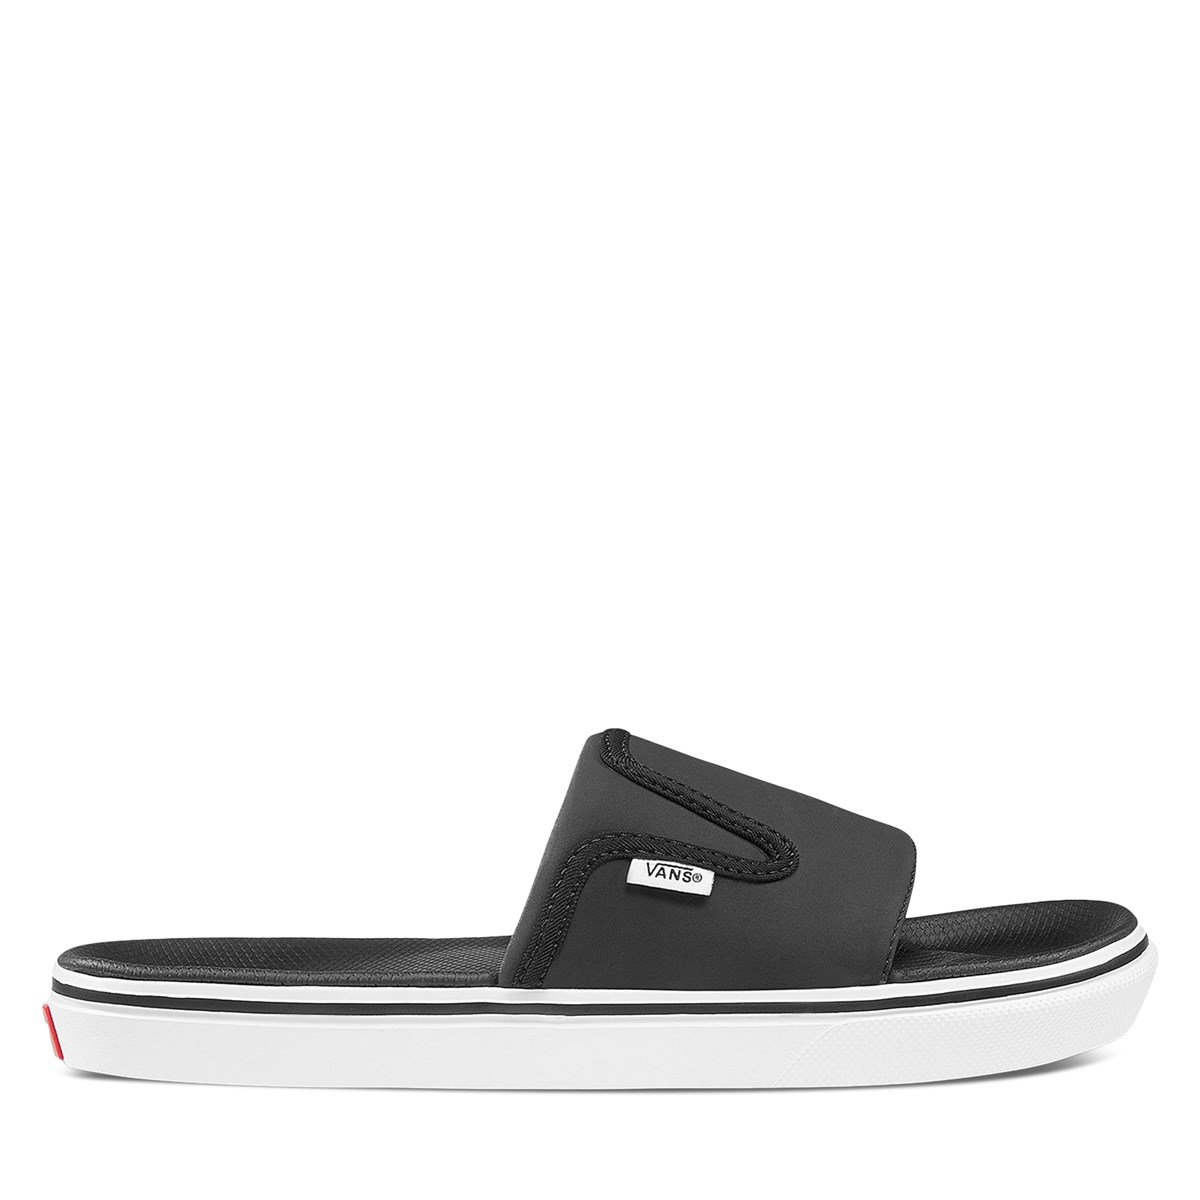 Men's UltraCush Slides in Black